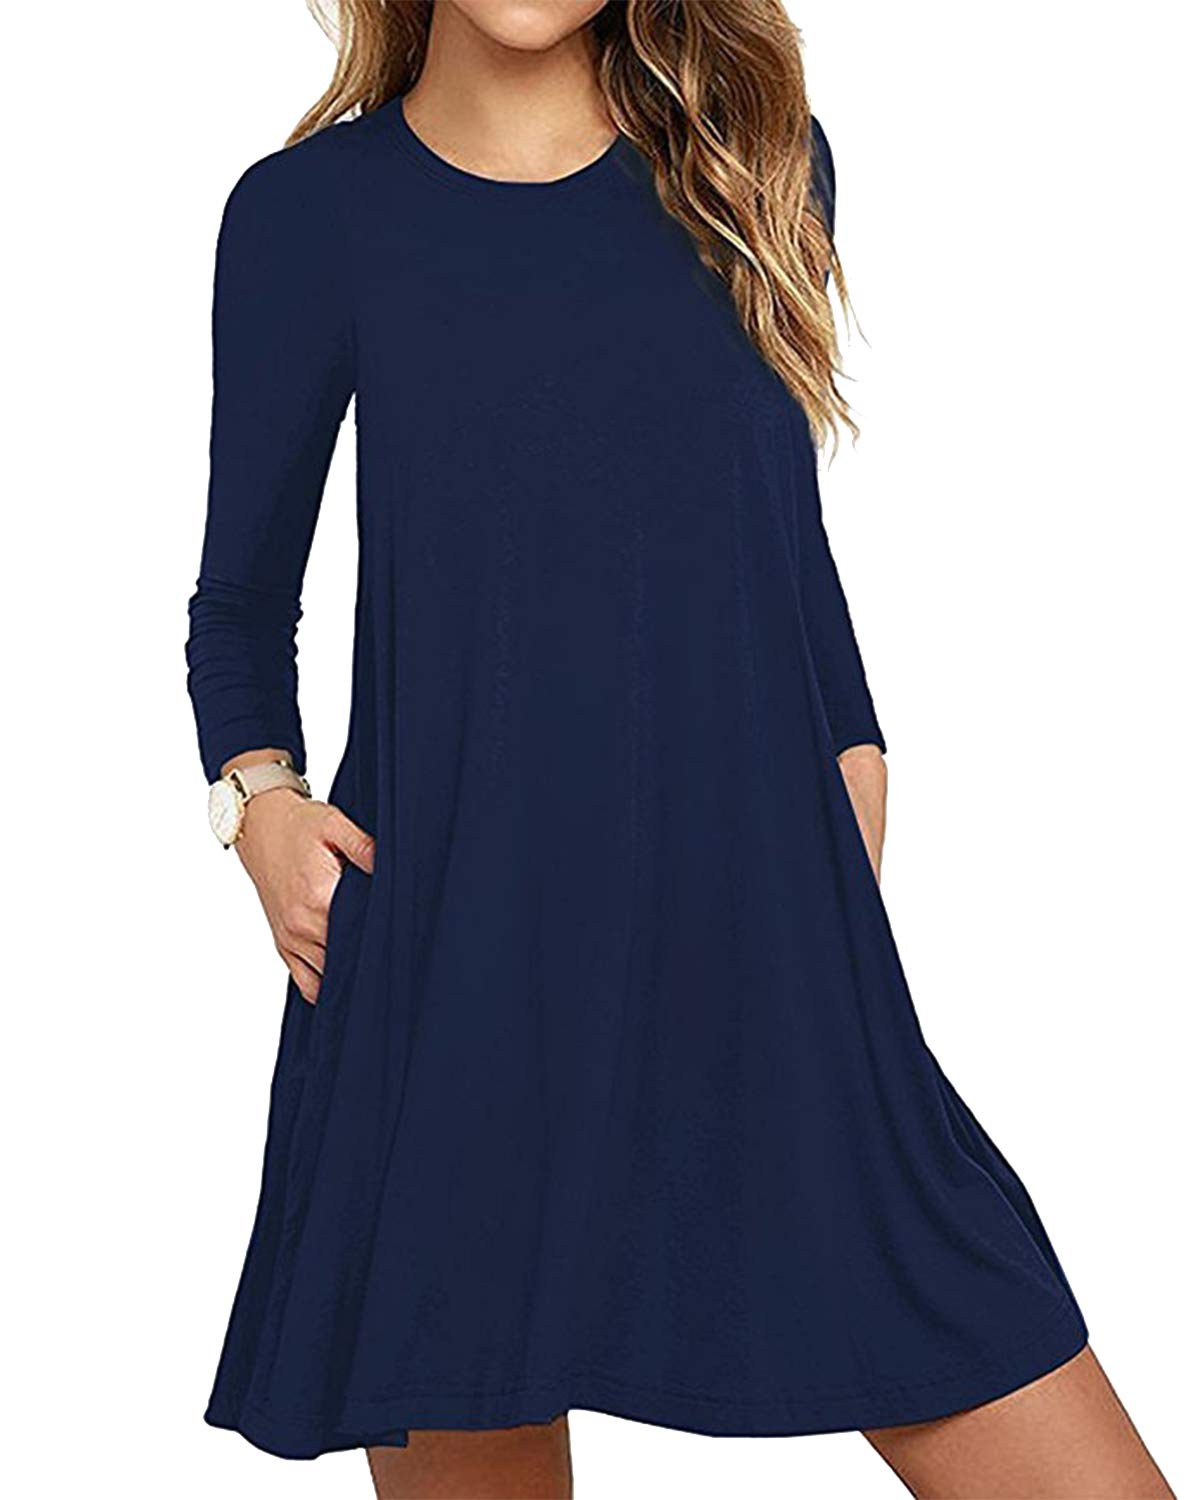 Deesdail Swing Dress with Pockets, Round Neck Long Sleeves Casual Tunic Dresses for Women Curved Hem Jersey Knit Loose Fitting Shirts Navy Blue